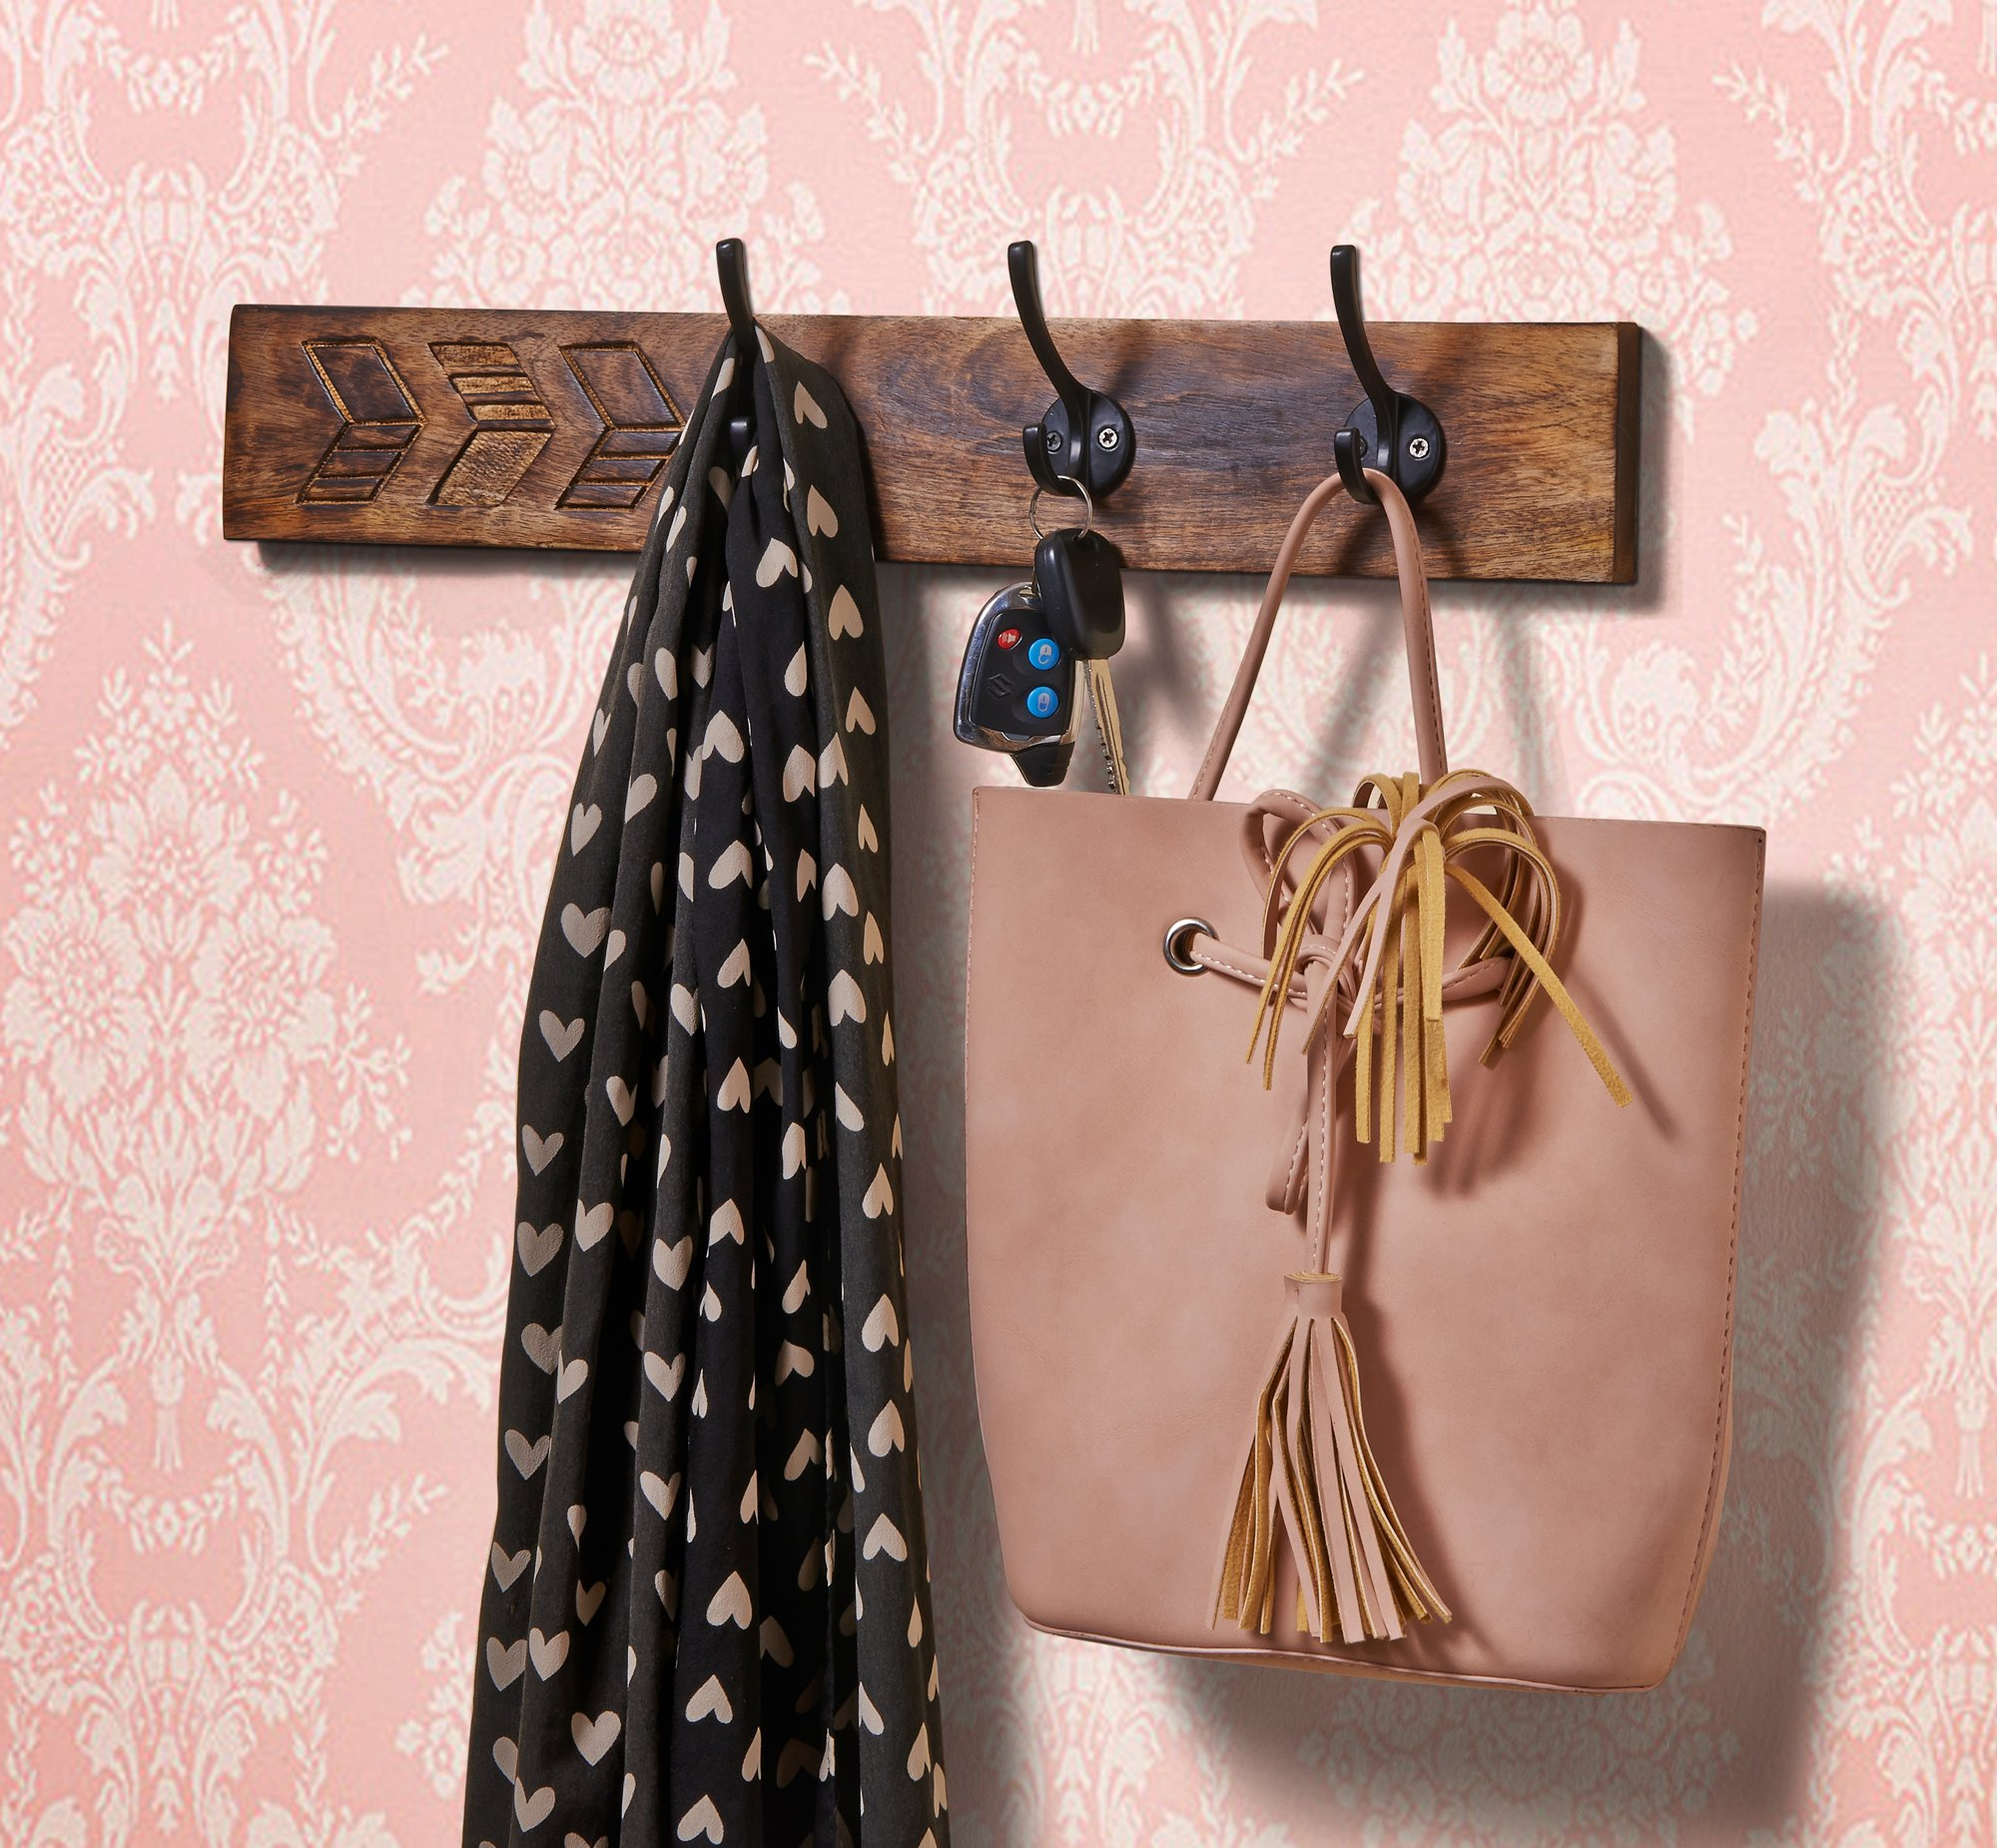 Mothers Day Gift Wooden Decorative Wall Hook Key Holders Organizer Hanger Rack Coat Hangers For Office & Home Decor - Mango wood (4)